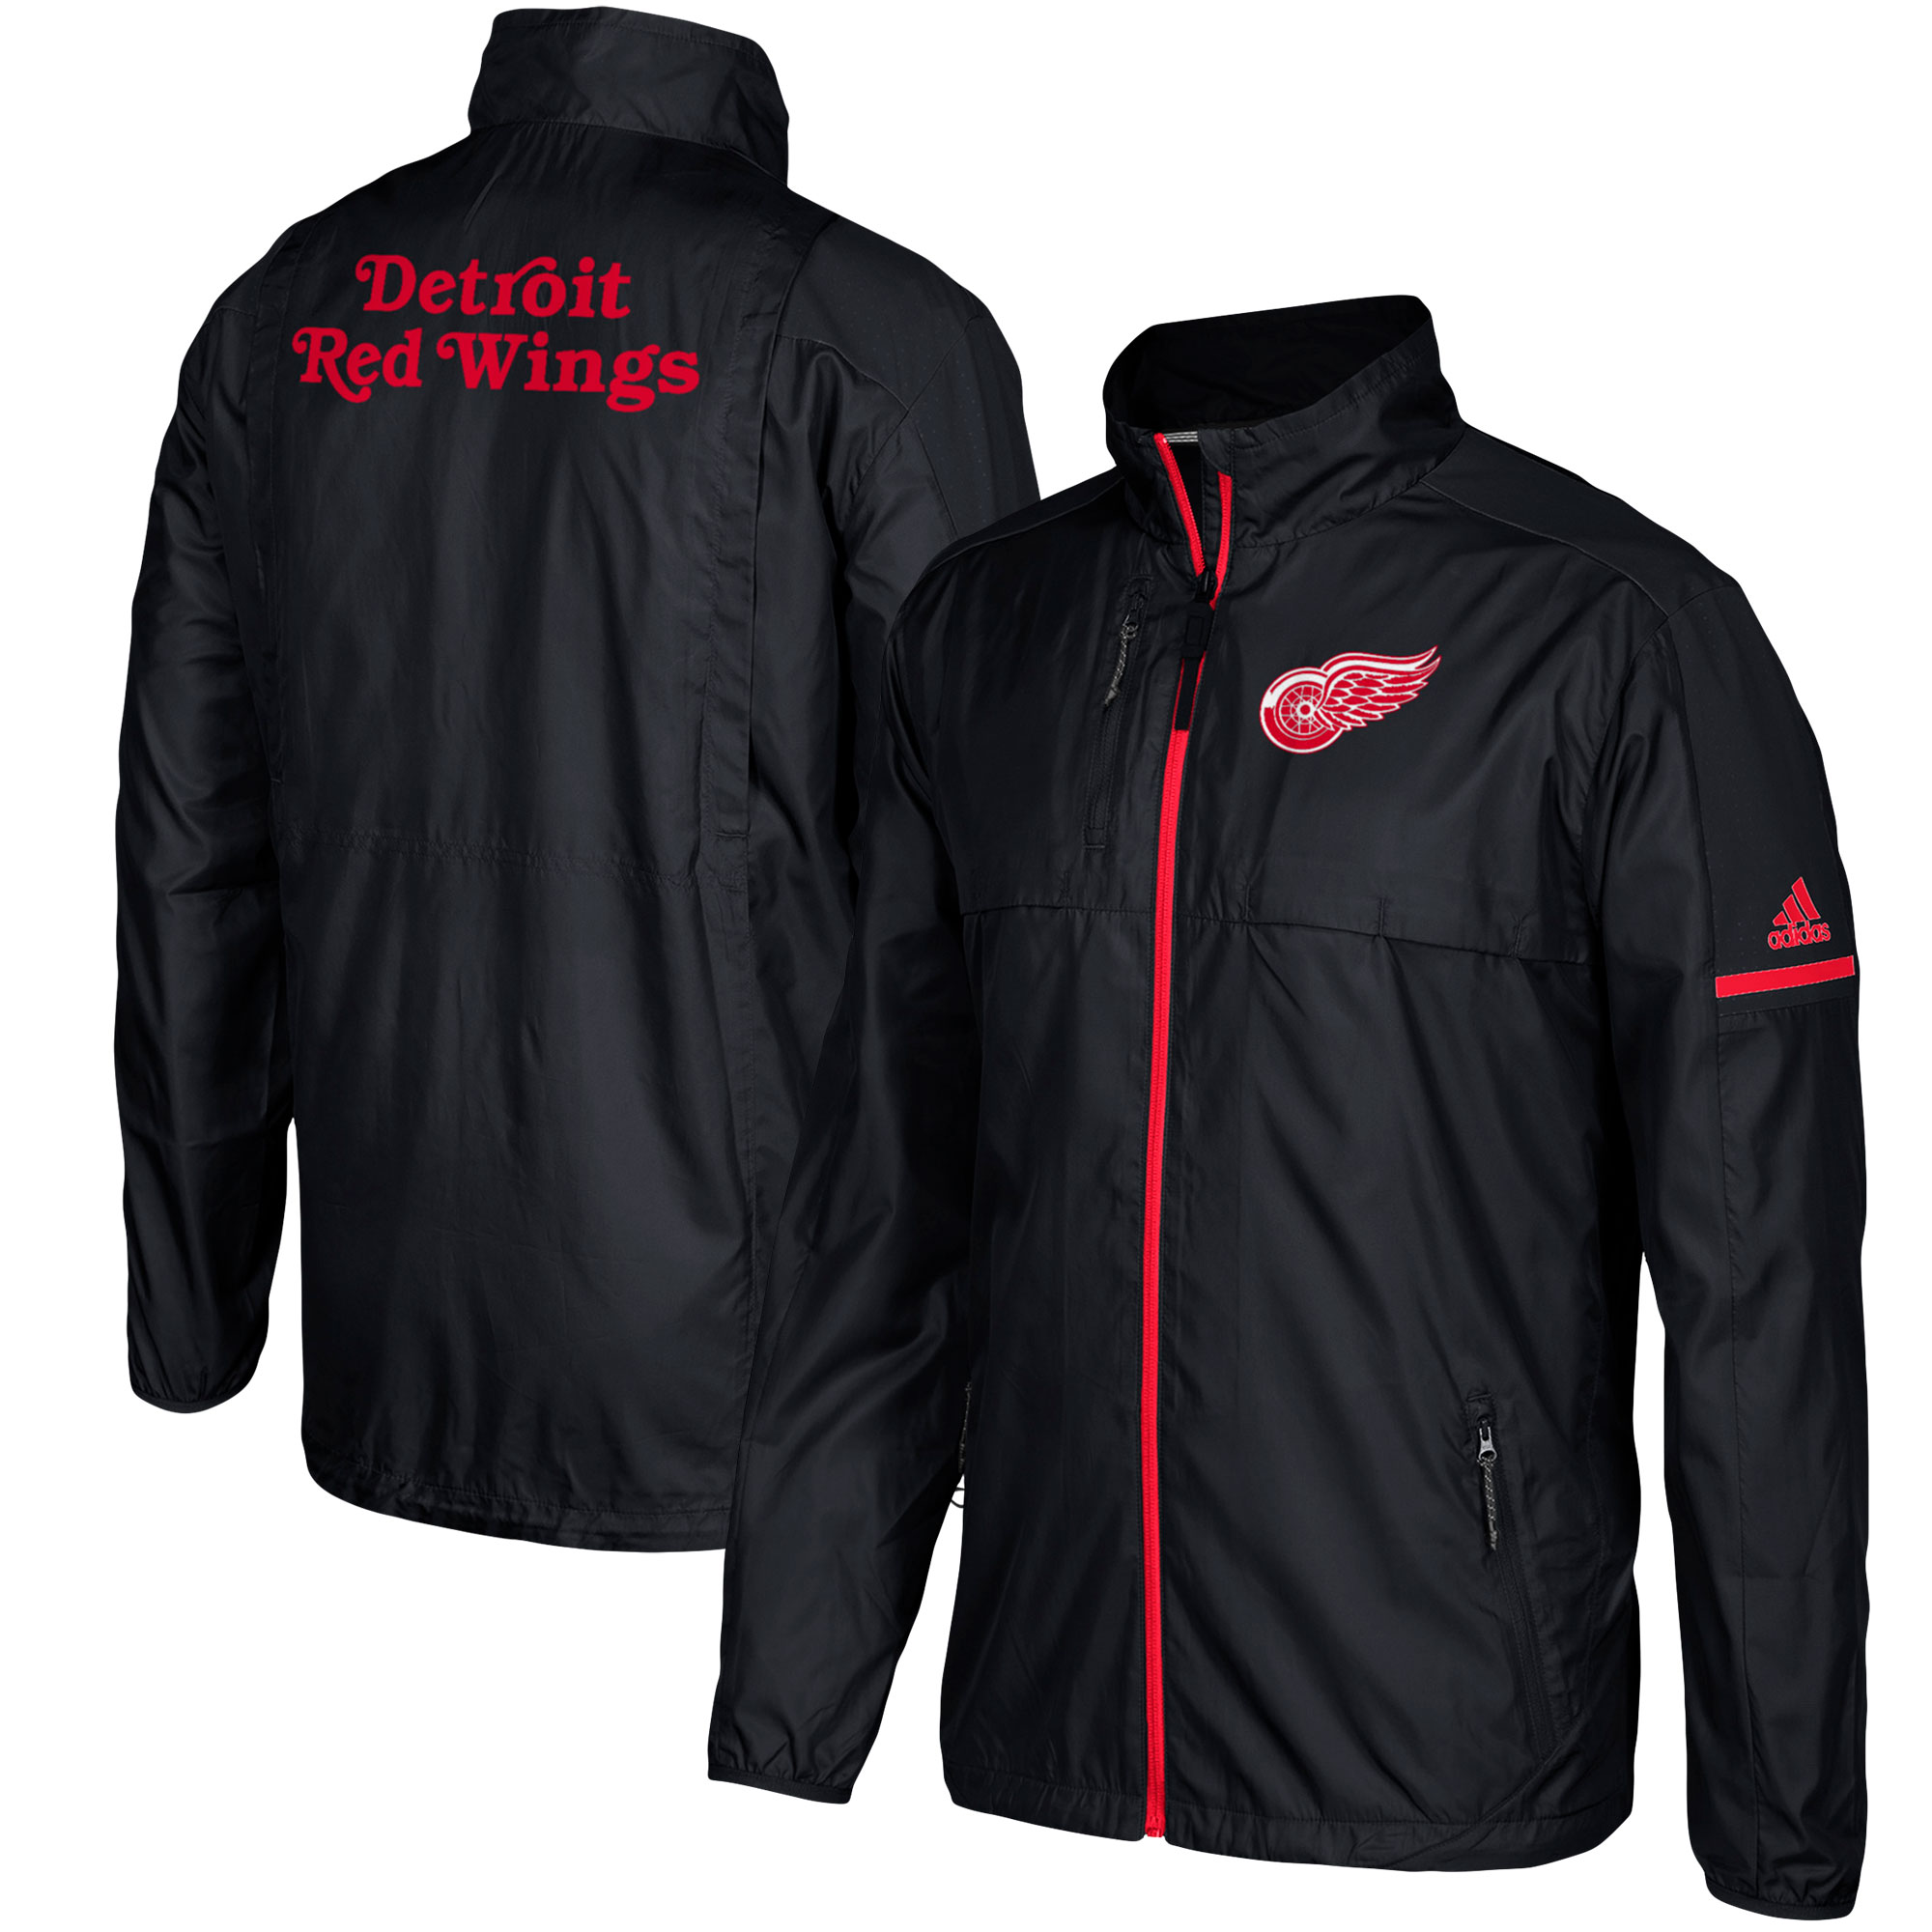 Detroit Red Wings adidas Authentic Rink Full-Zip Jacket - Black